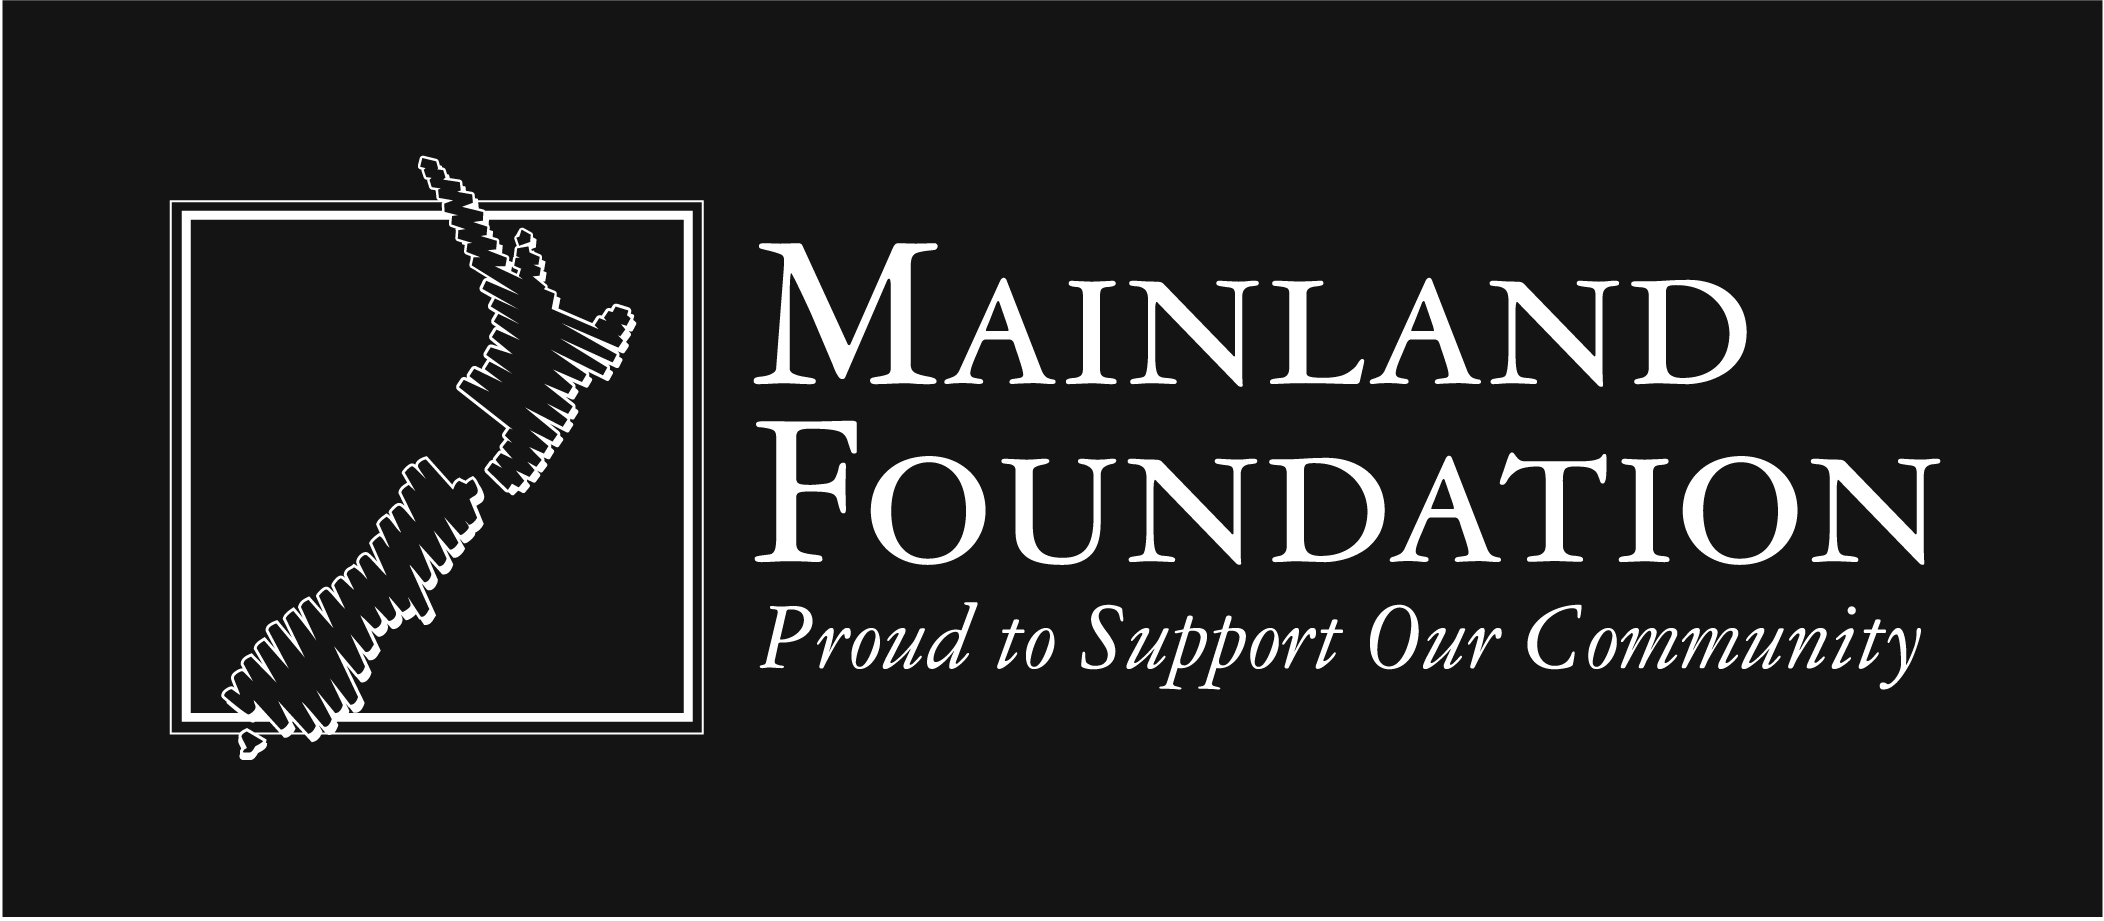 Mainland Foundation Black